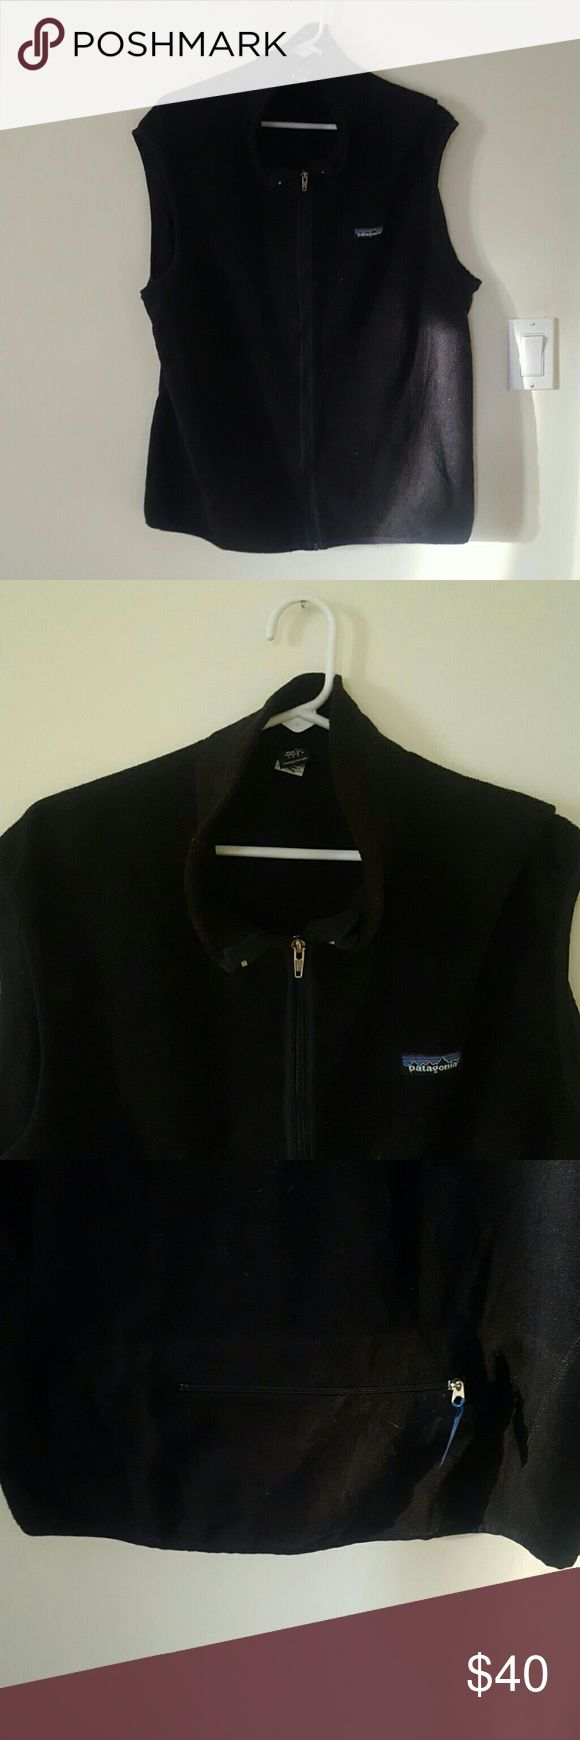 SALE Patagonia vest Black vest from patagonia. Zip up front. Lined inside. Zip pocket on back Patagonia Jackets & Coats Vests